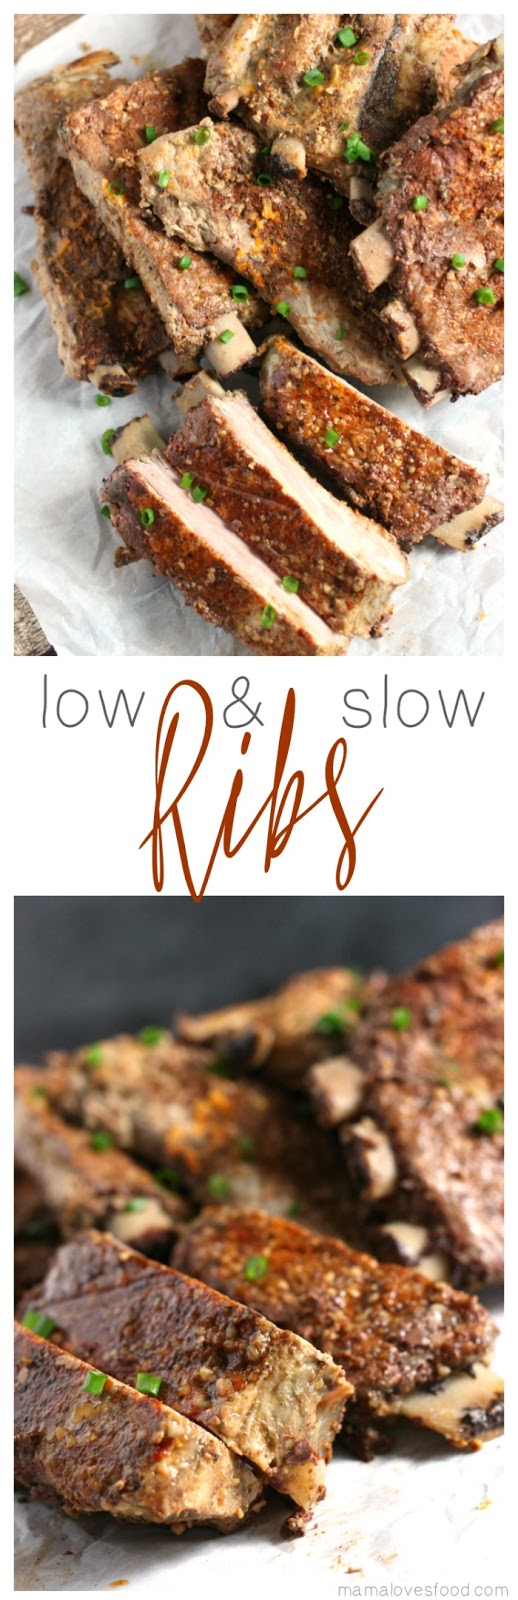 Fall Off the Bone Pork Barbecue Ribs - Low and Slow Rib Cooking Method